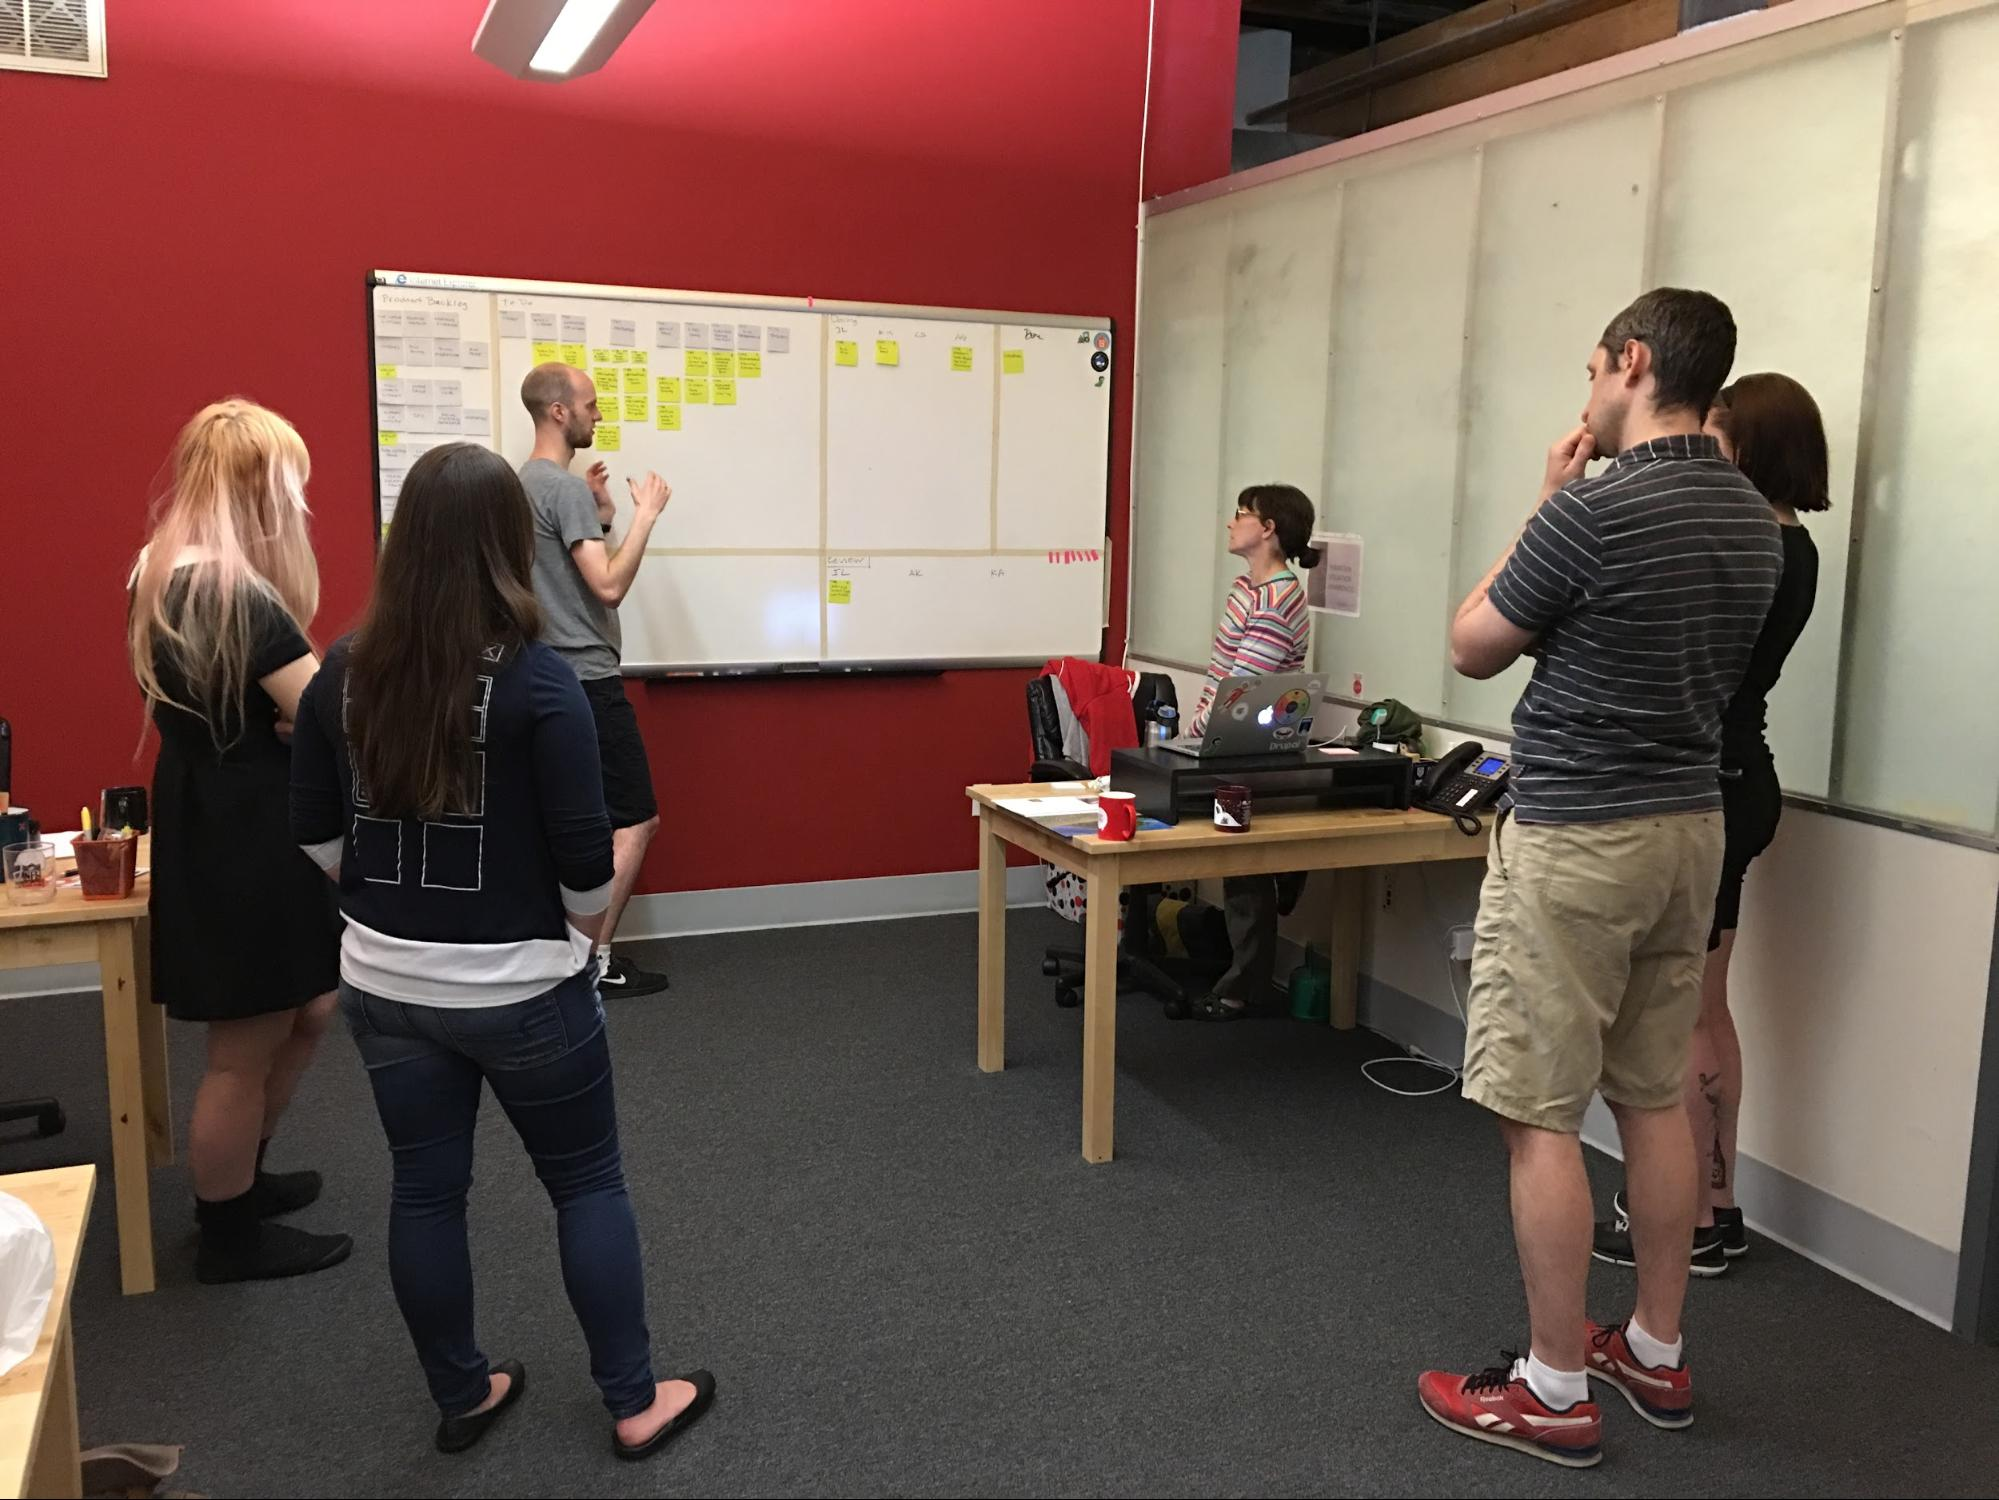 The image above shows a typical daily standup meeting from the project.